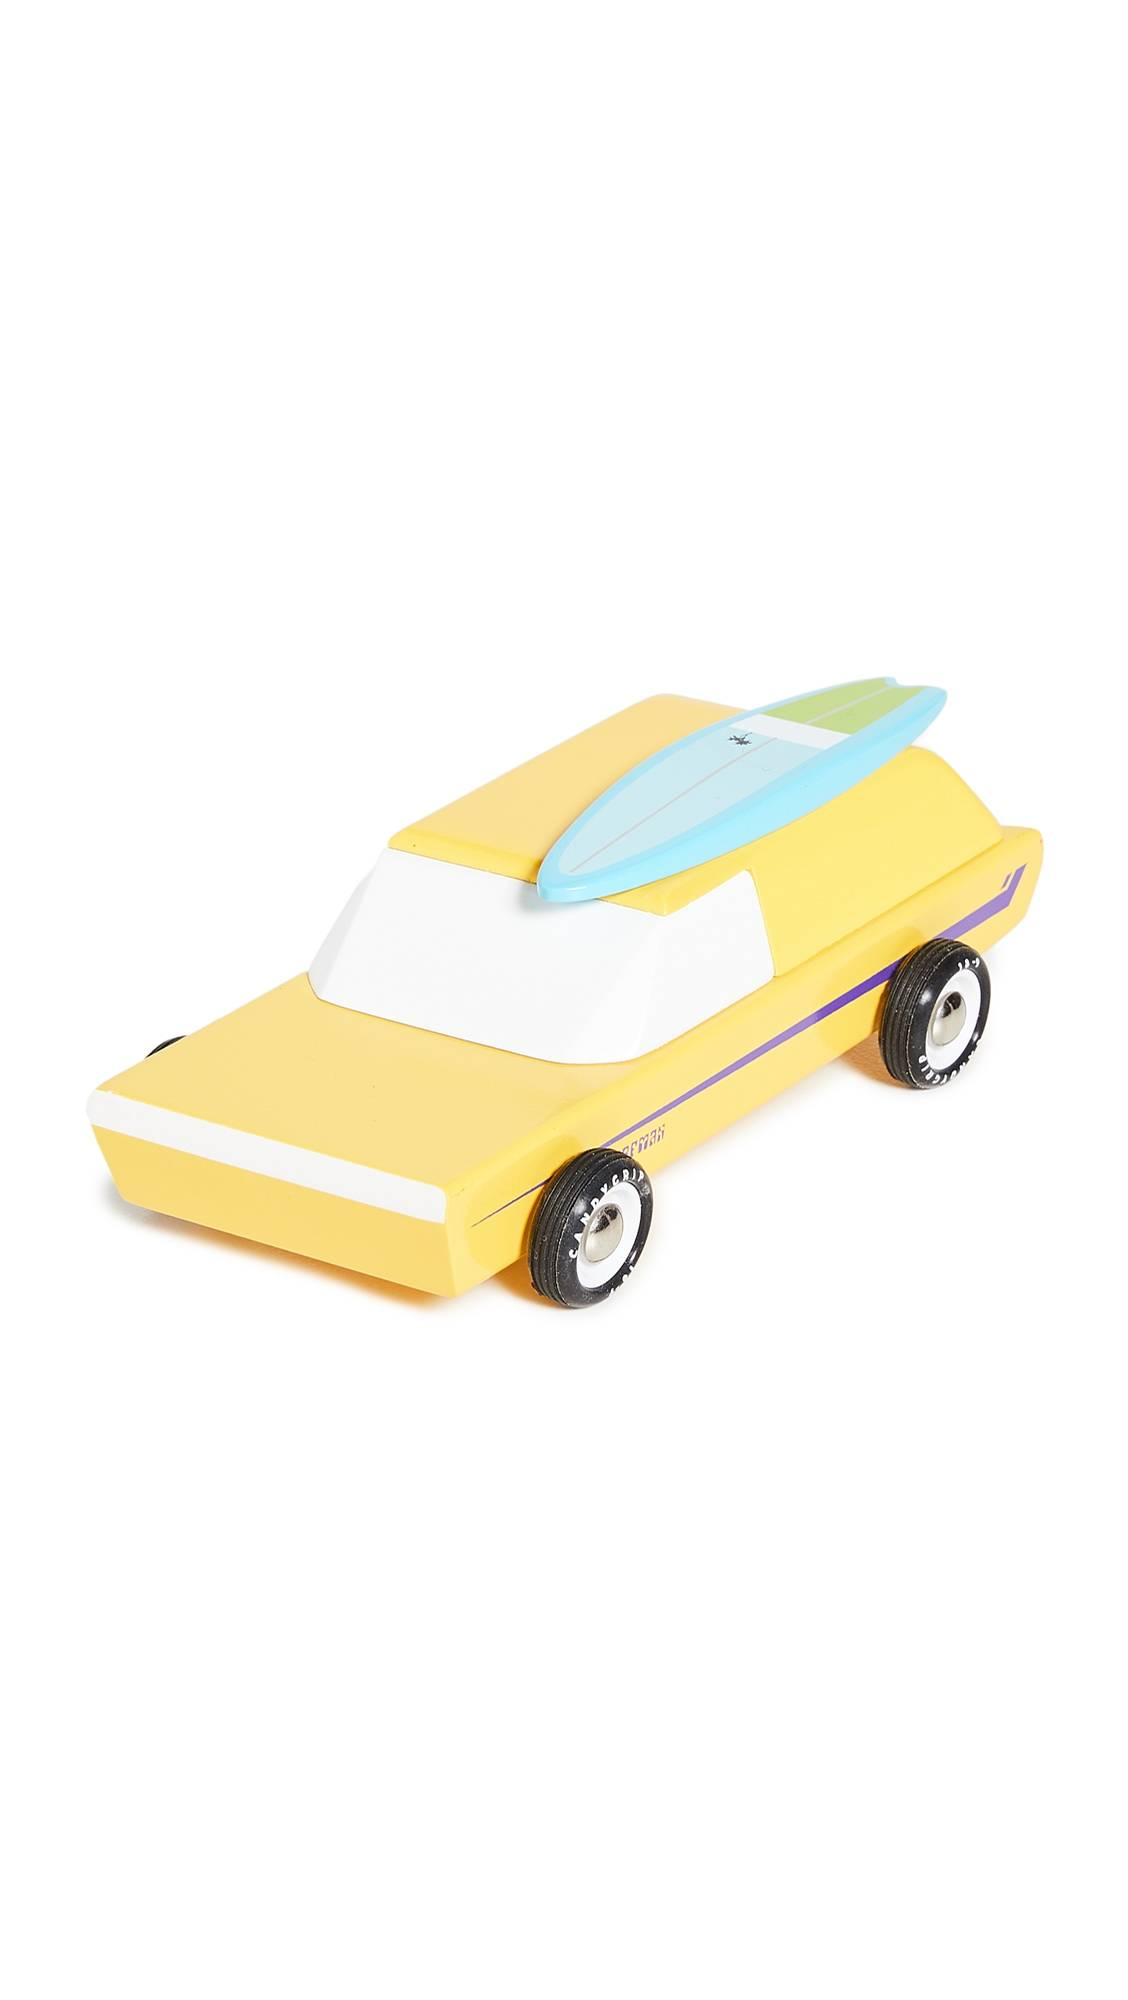 Candylab Toys Surfman Toy Car - Size: Male